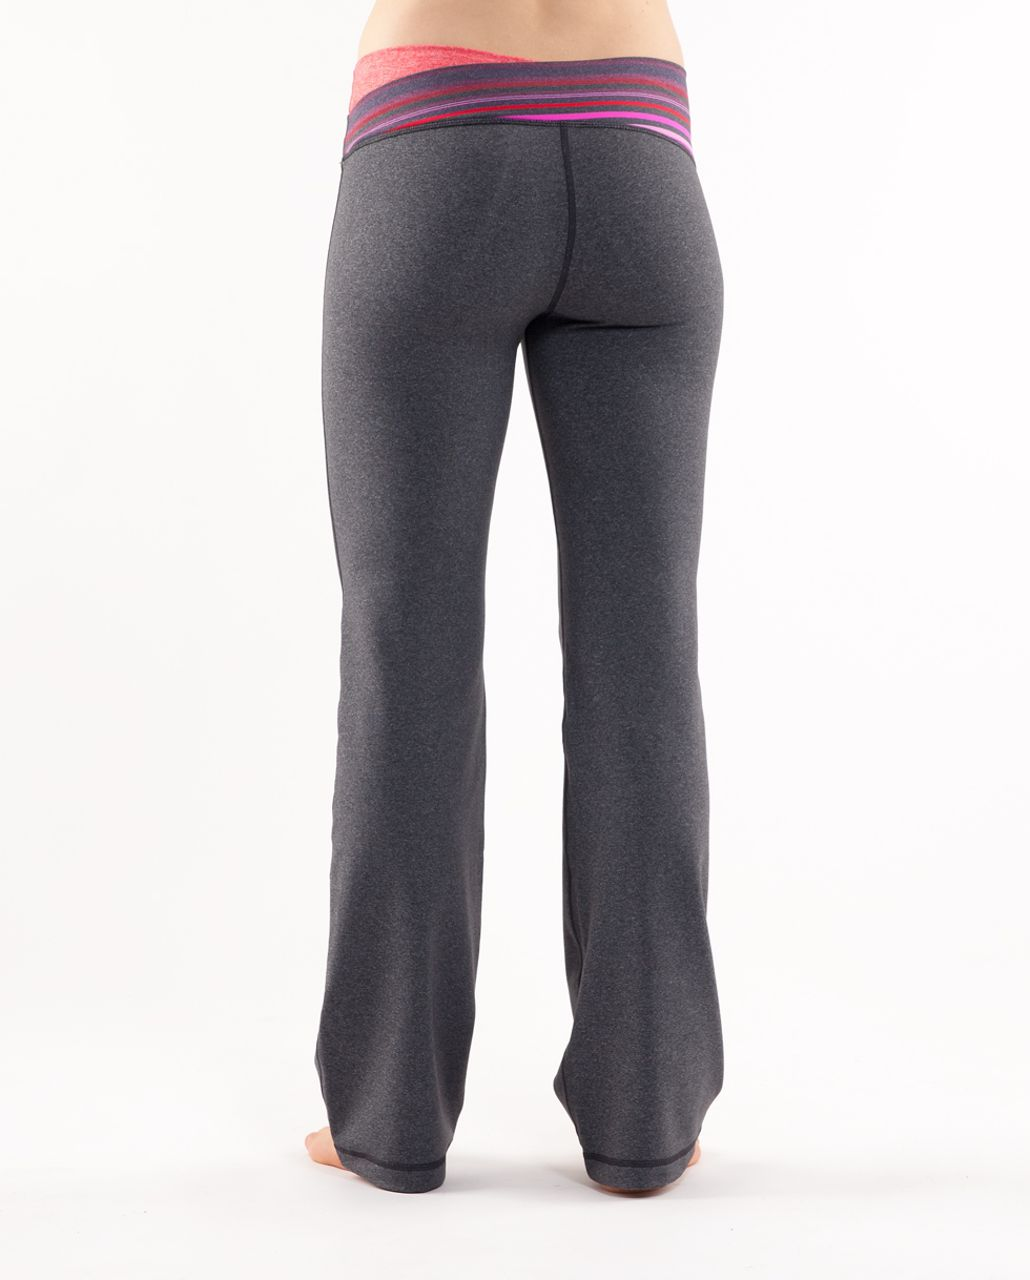 Lululemon Astro Pant (Tall) - Heathered Deep Coal /  Heathered Currant /  Currant